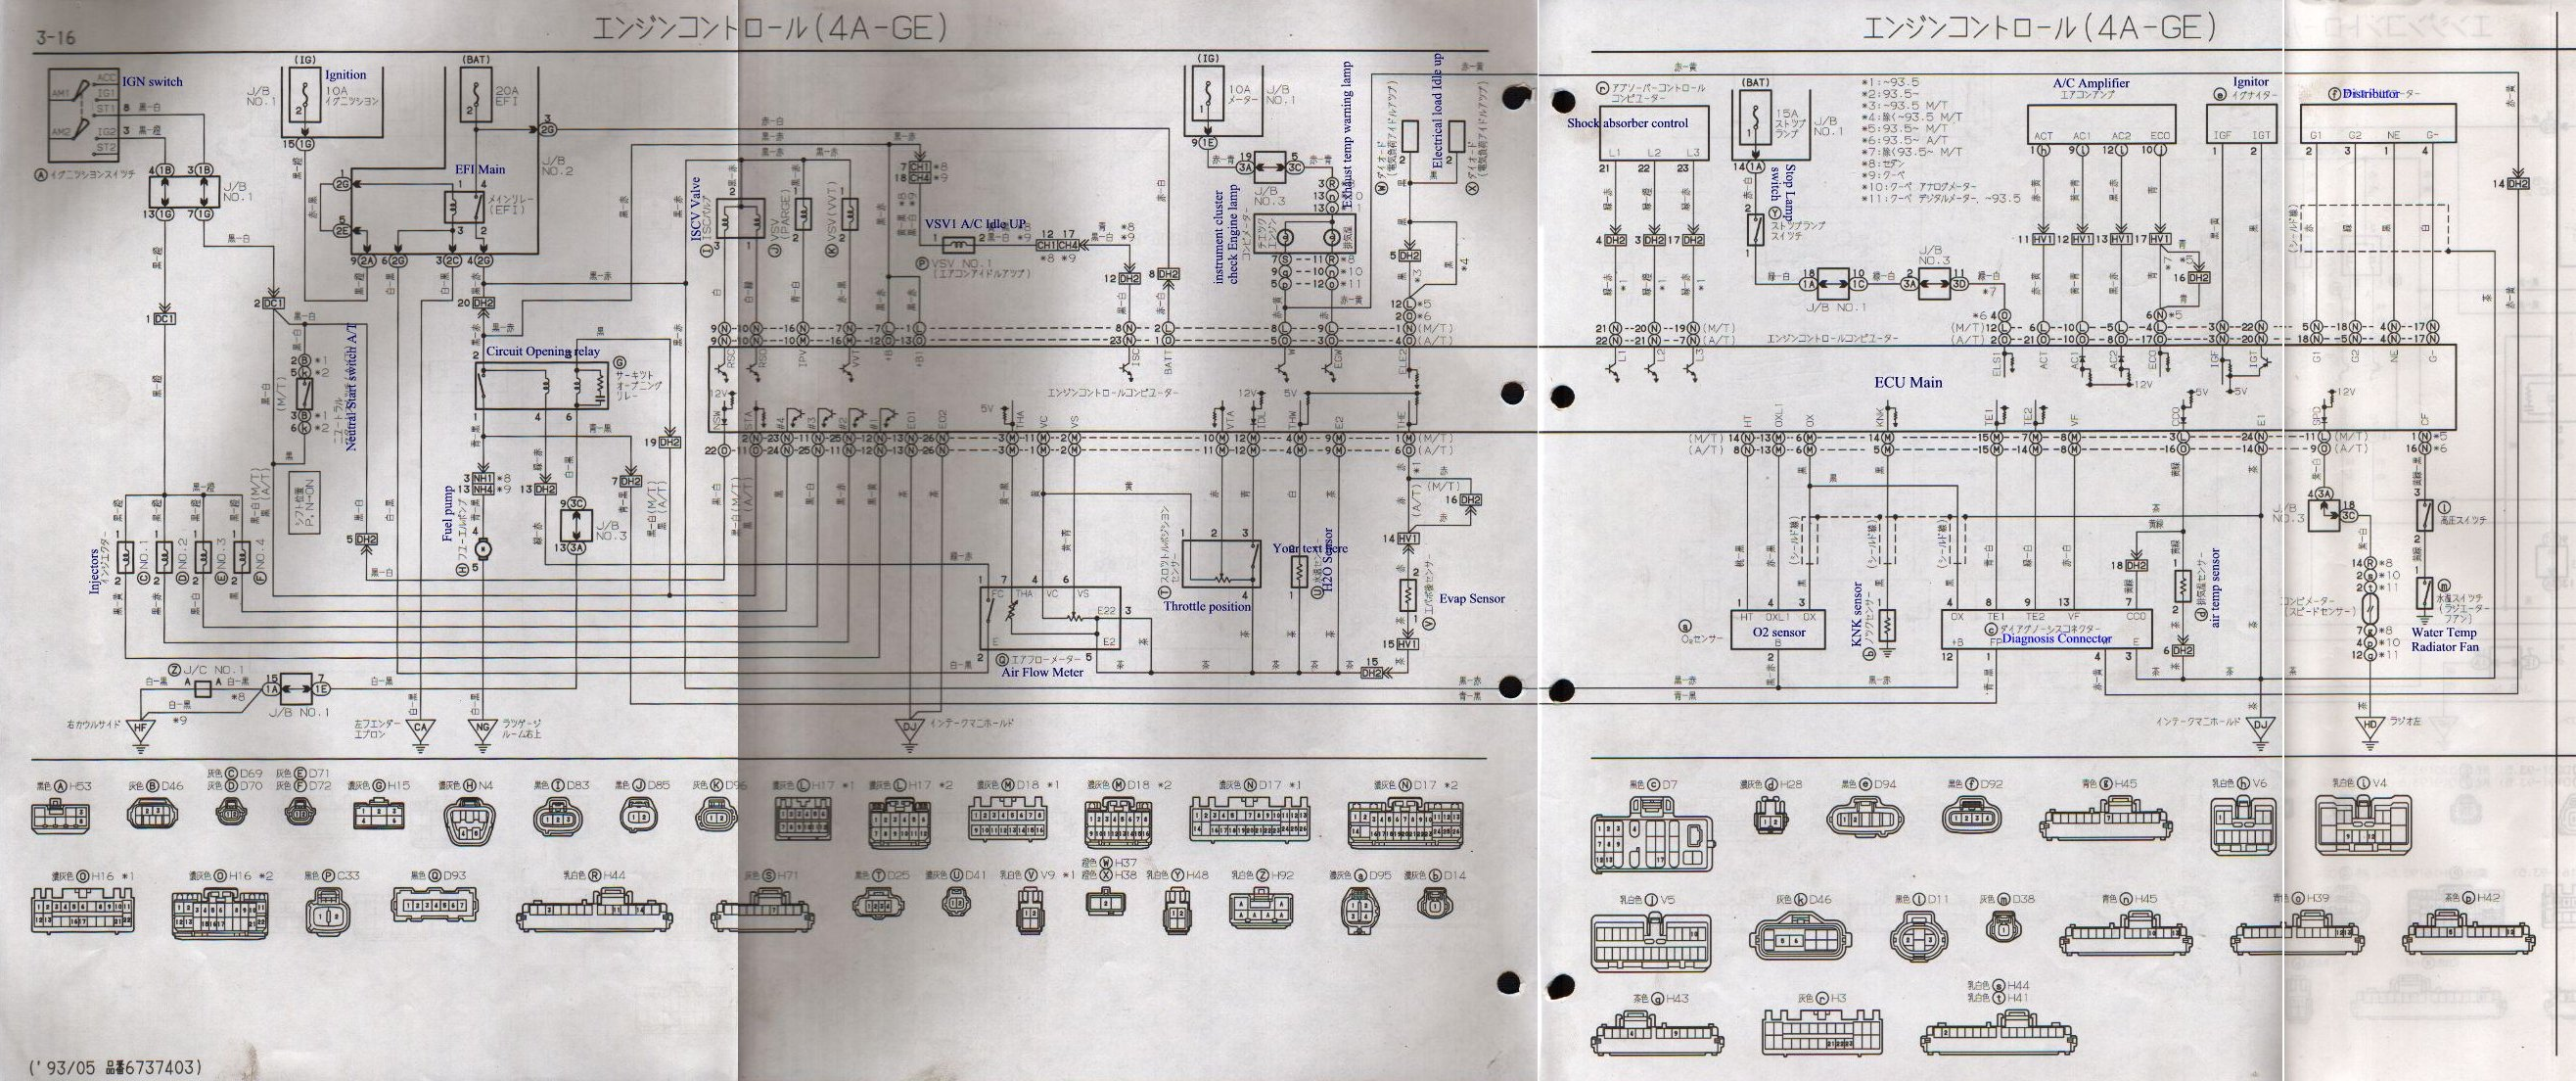 connector pinout and schematic - toyota nation forum : toyota car, Wiring diagram